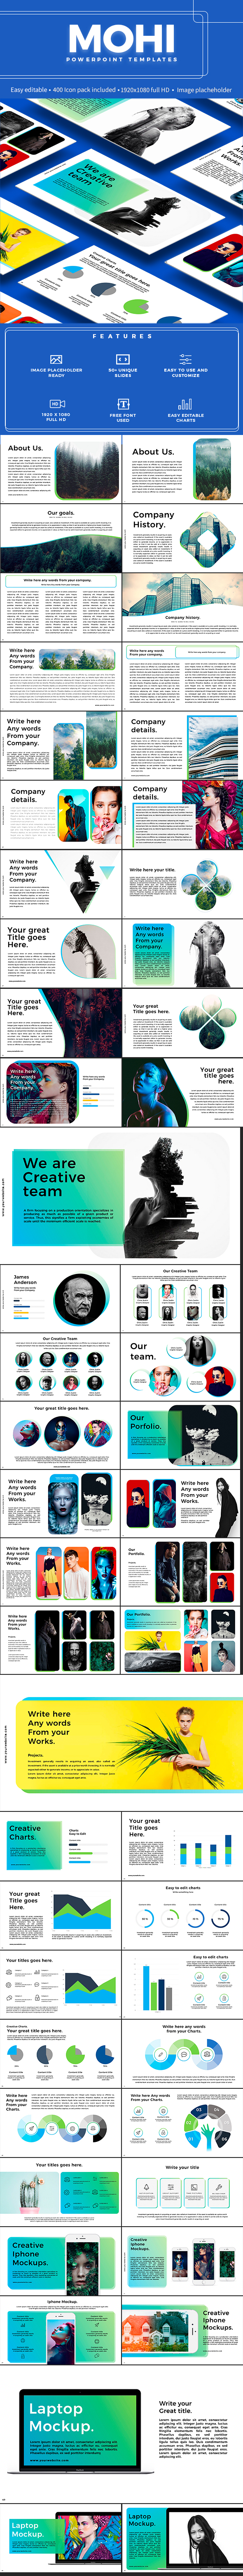 Mohi Powerpoint Tempate - PowerPoint Templates Presentation Templates